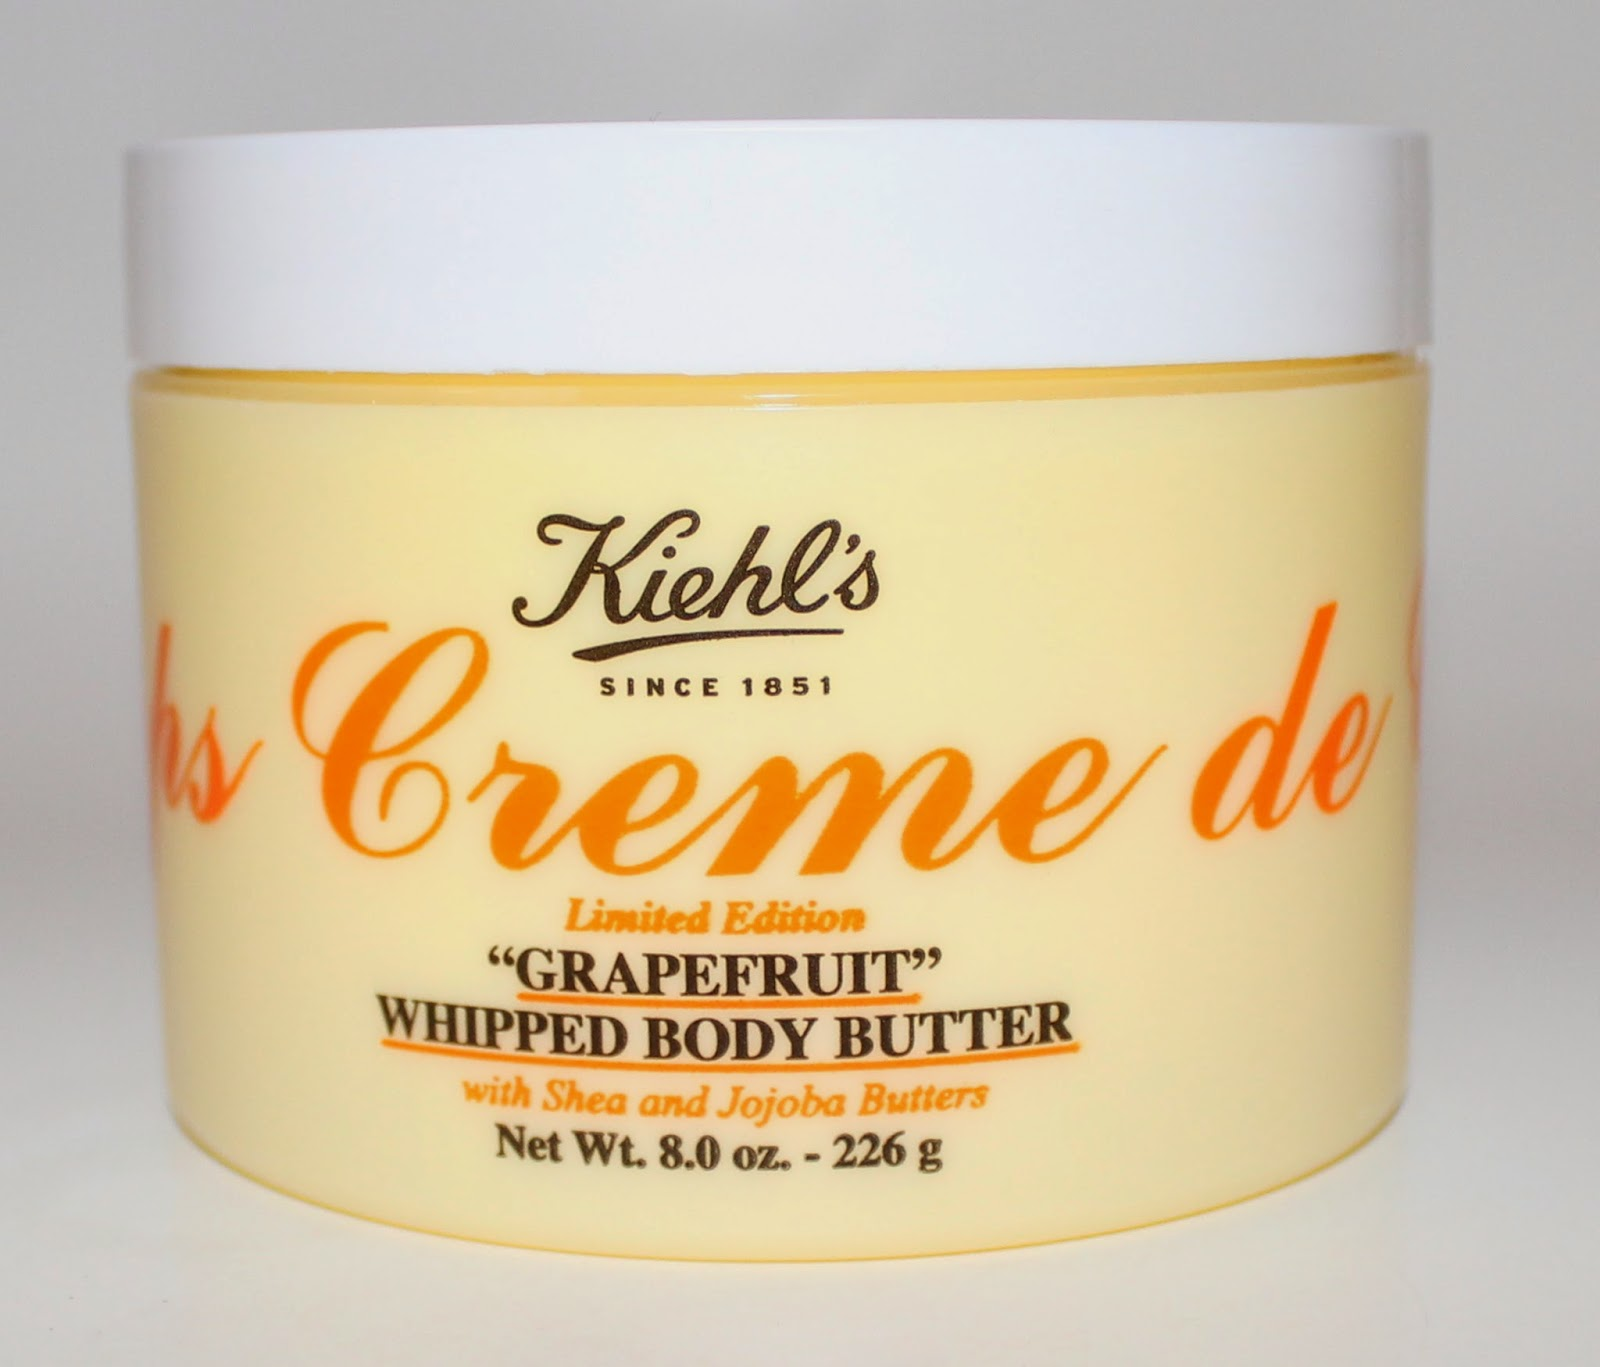 Kiehl's Limited Edition Creme de Corps Grapefruit Whipped Body Butter